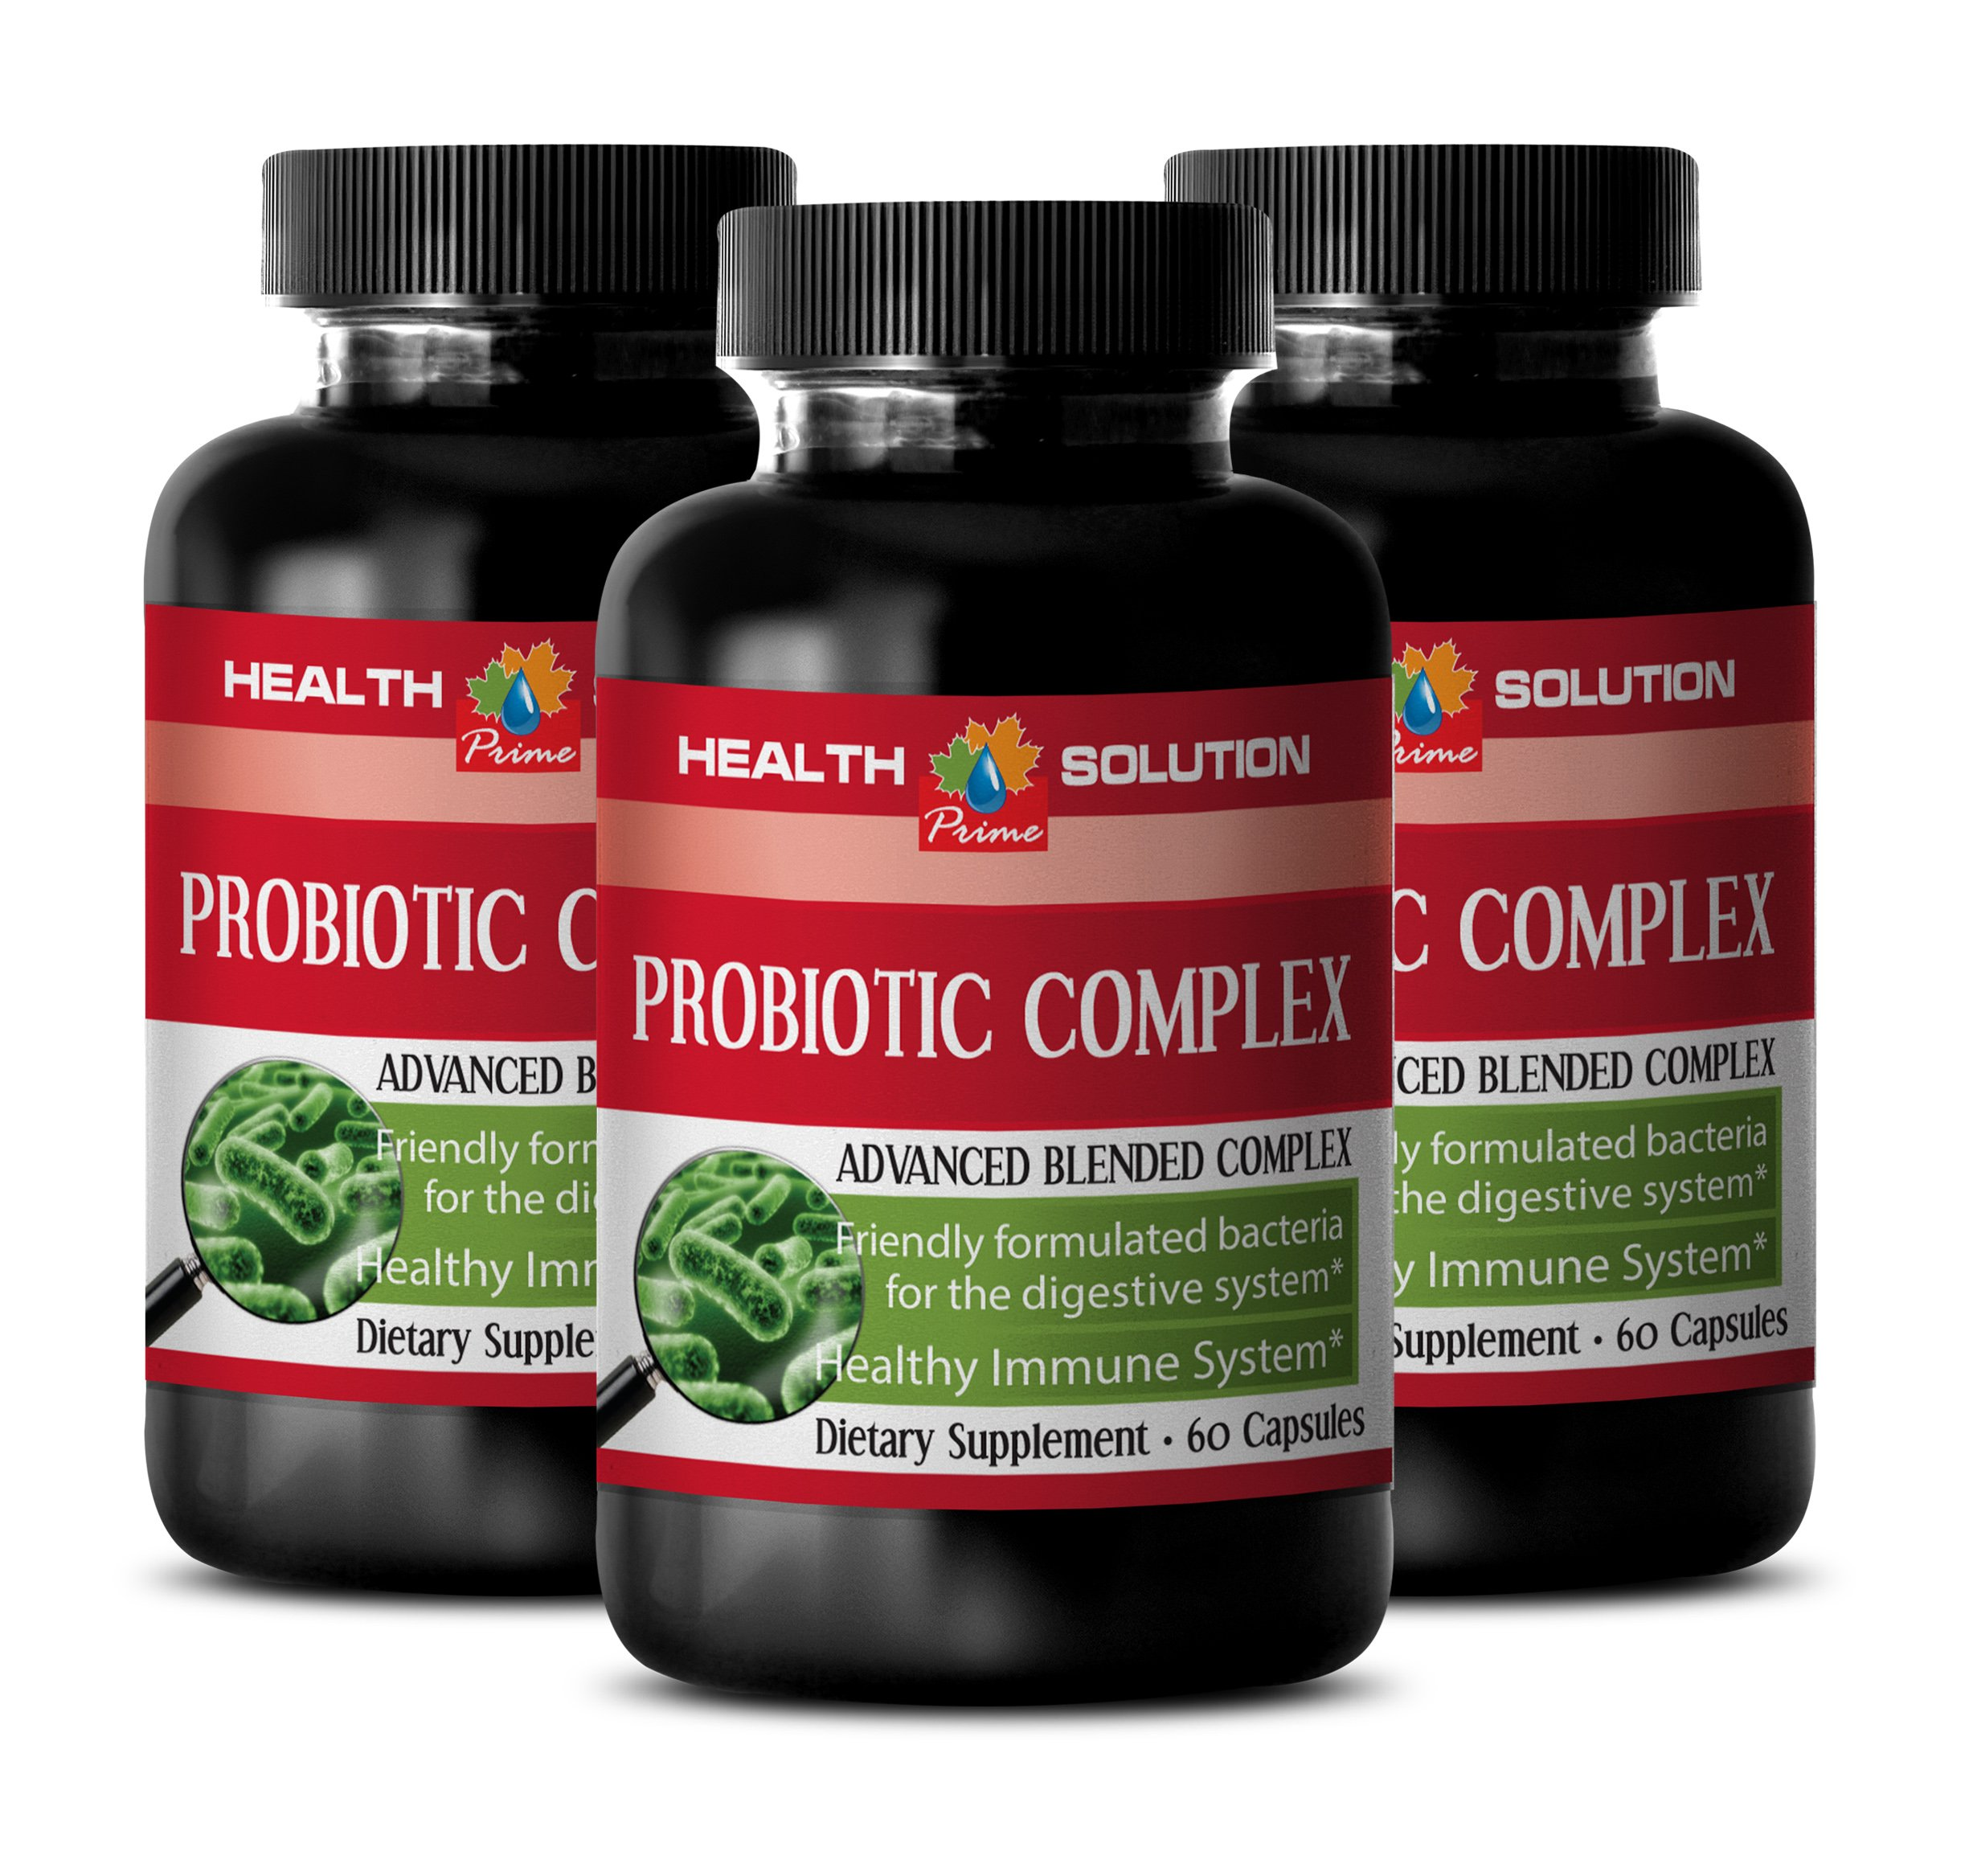 Probiotic immune support - PROBIOTIC COMPLEX 550MG - help to support skin (3 Bottles) by Health Solution Prime